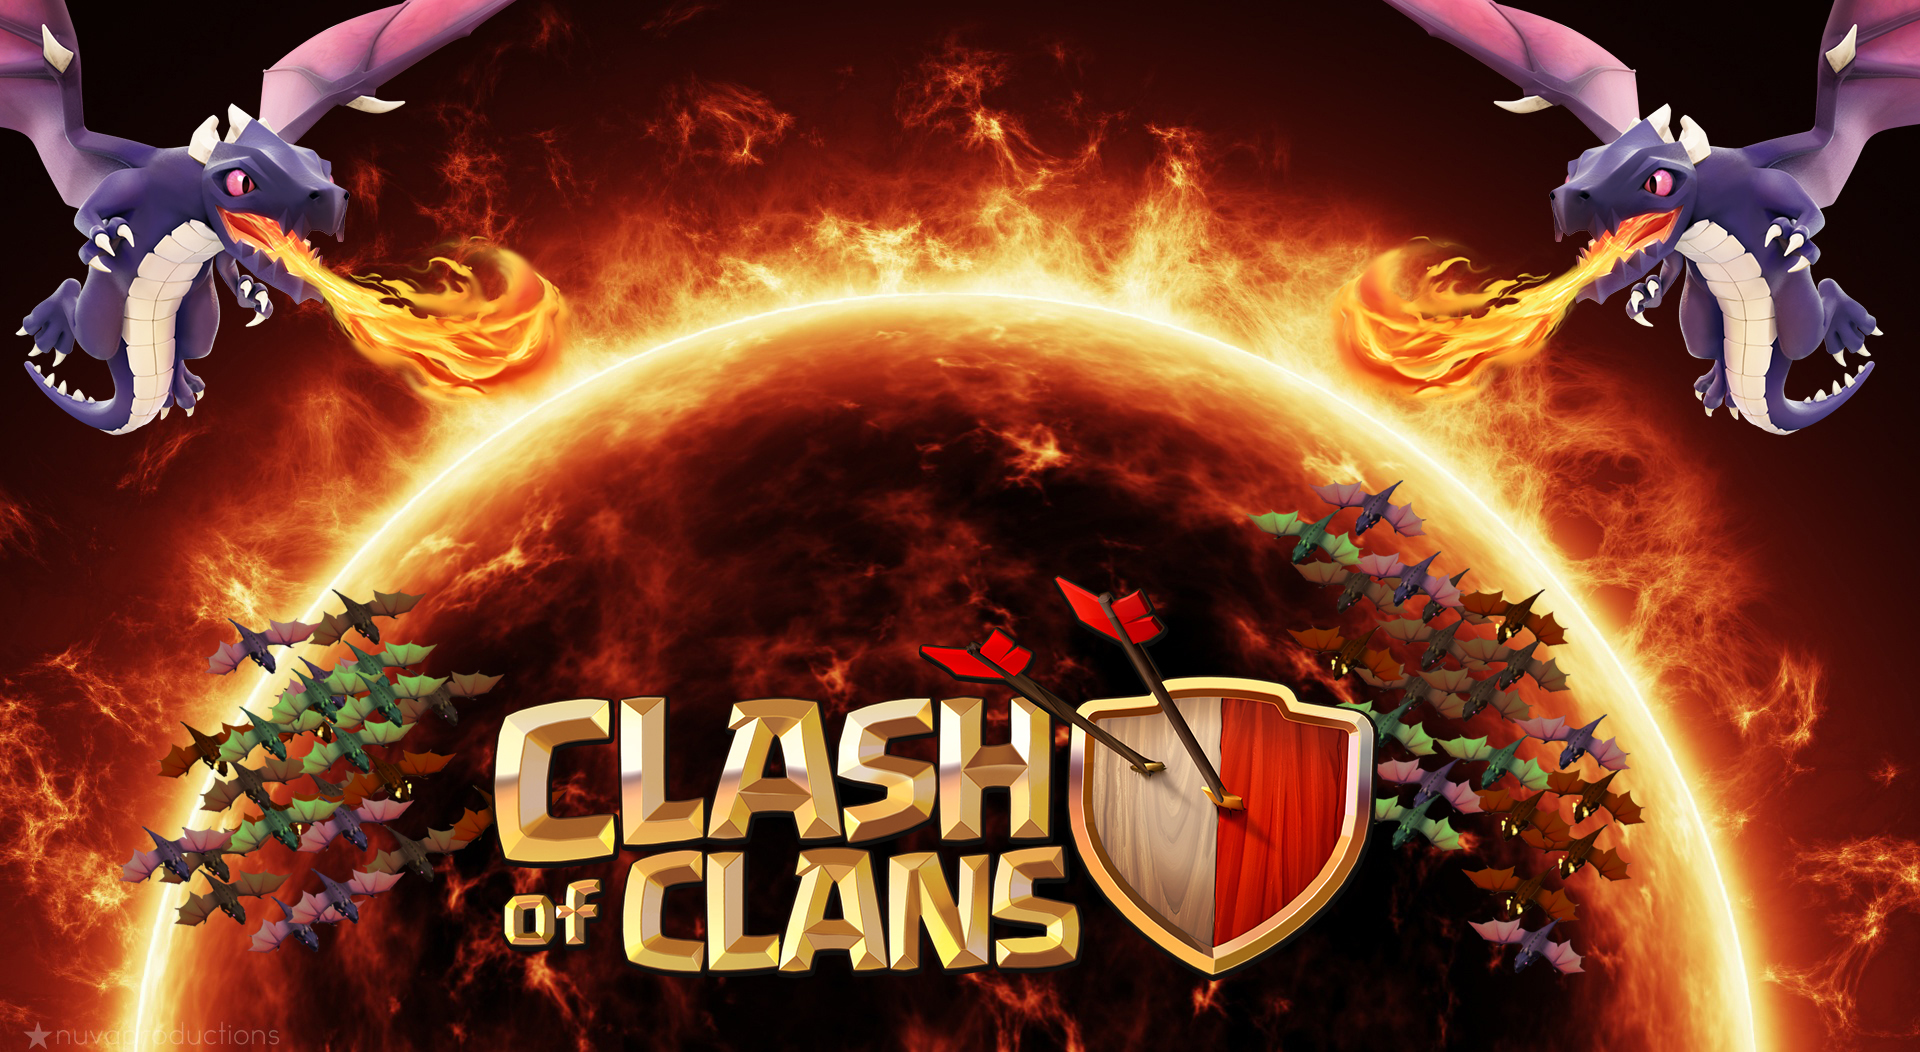 Clash Of Clans Wallpapers WeNeedFun 1920x1052